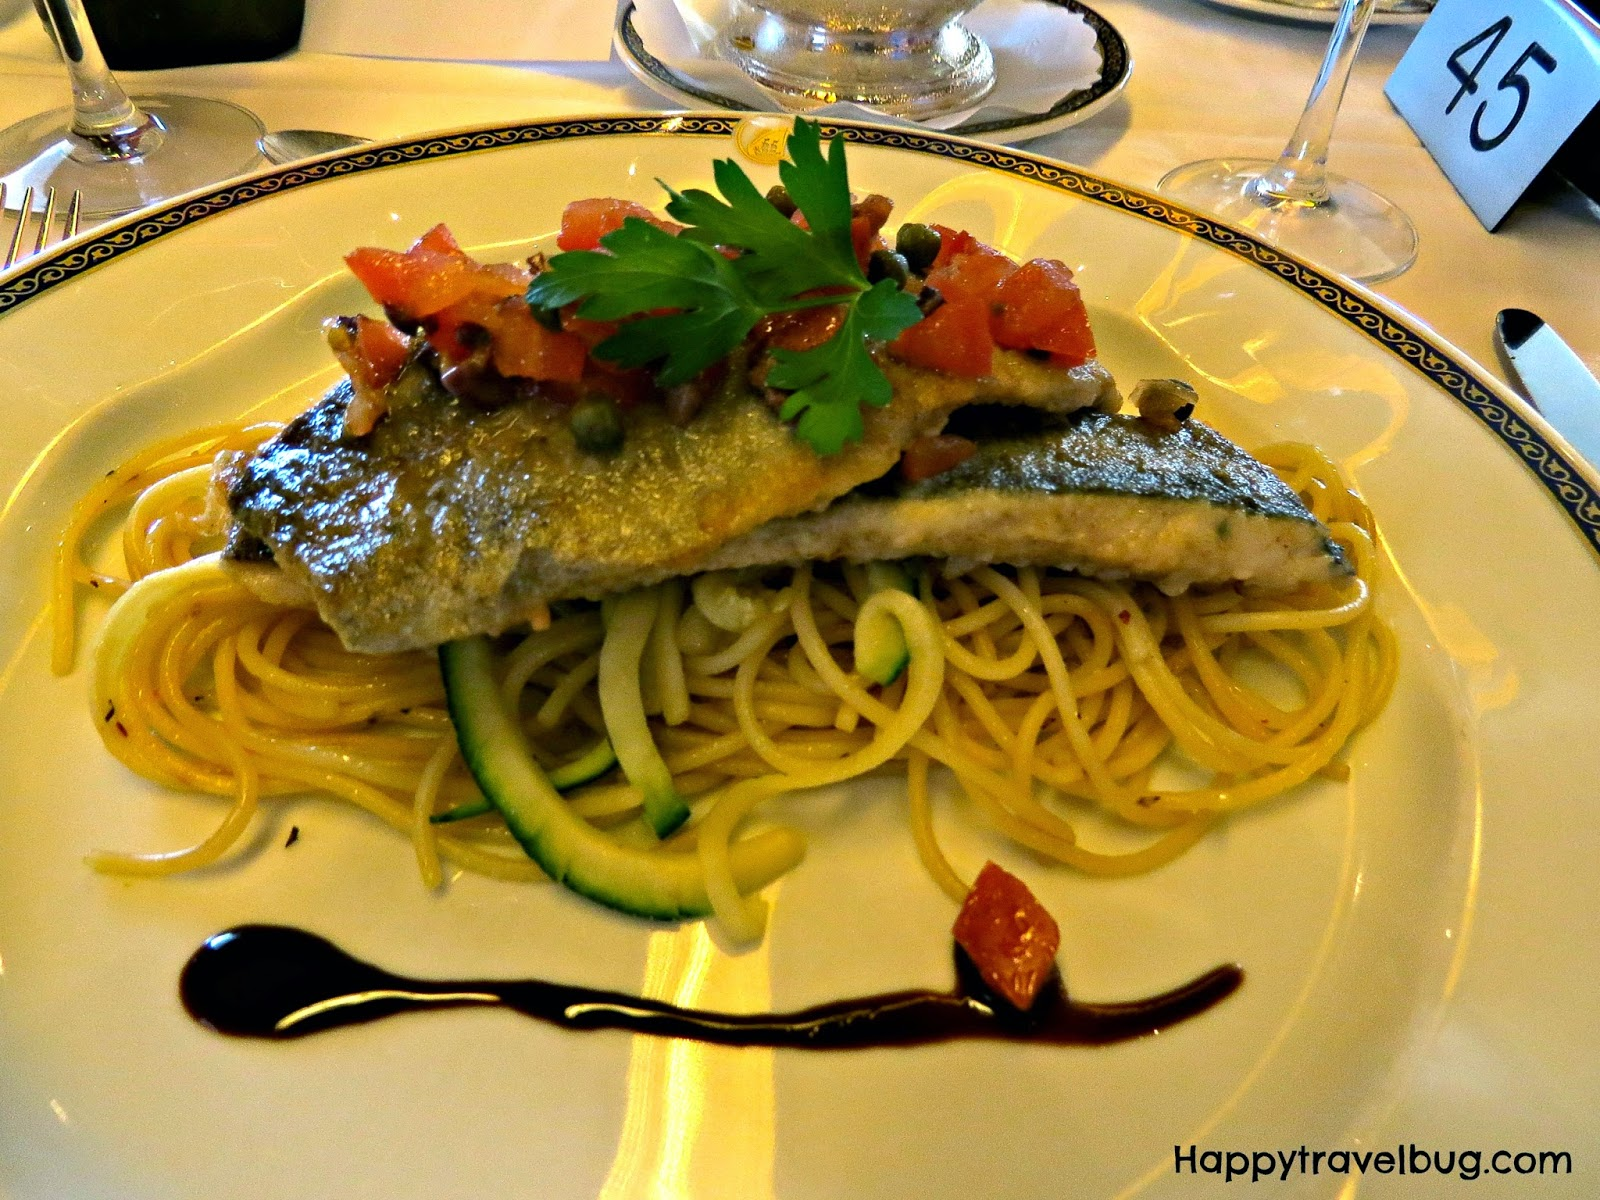 Rainbow trout from dinner on our Holland America Cruise